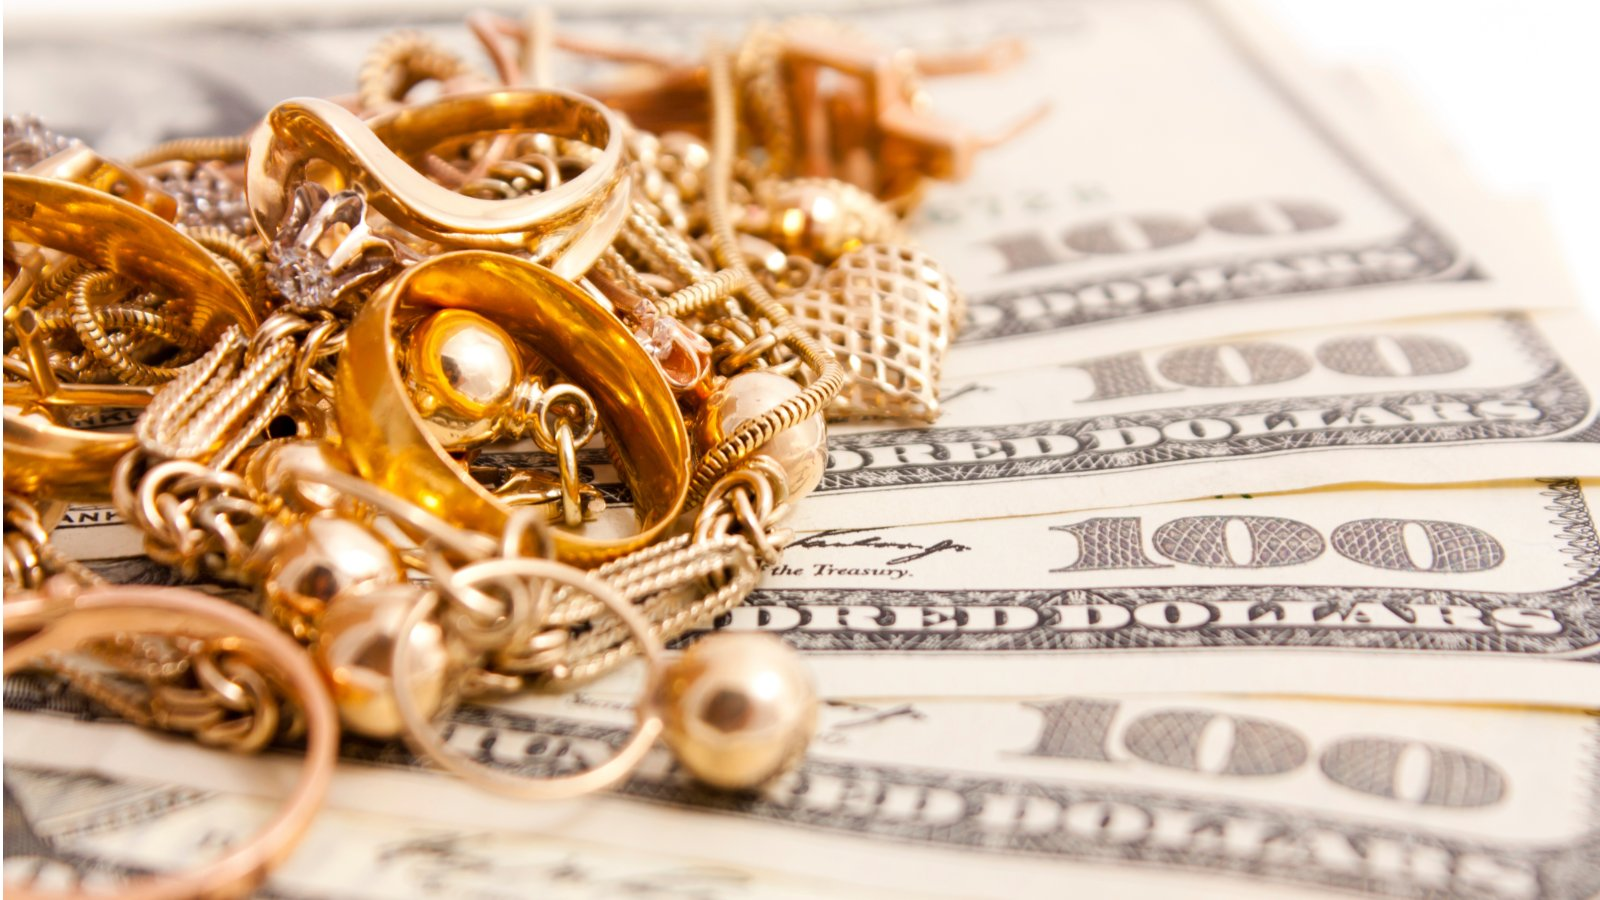 Gold Jewelry and Cash